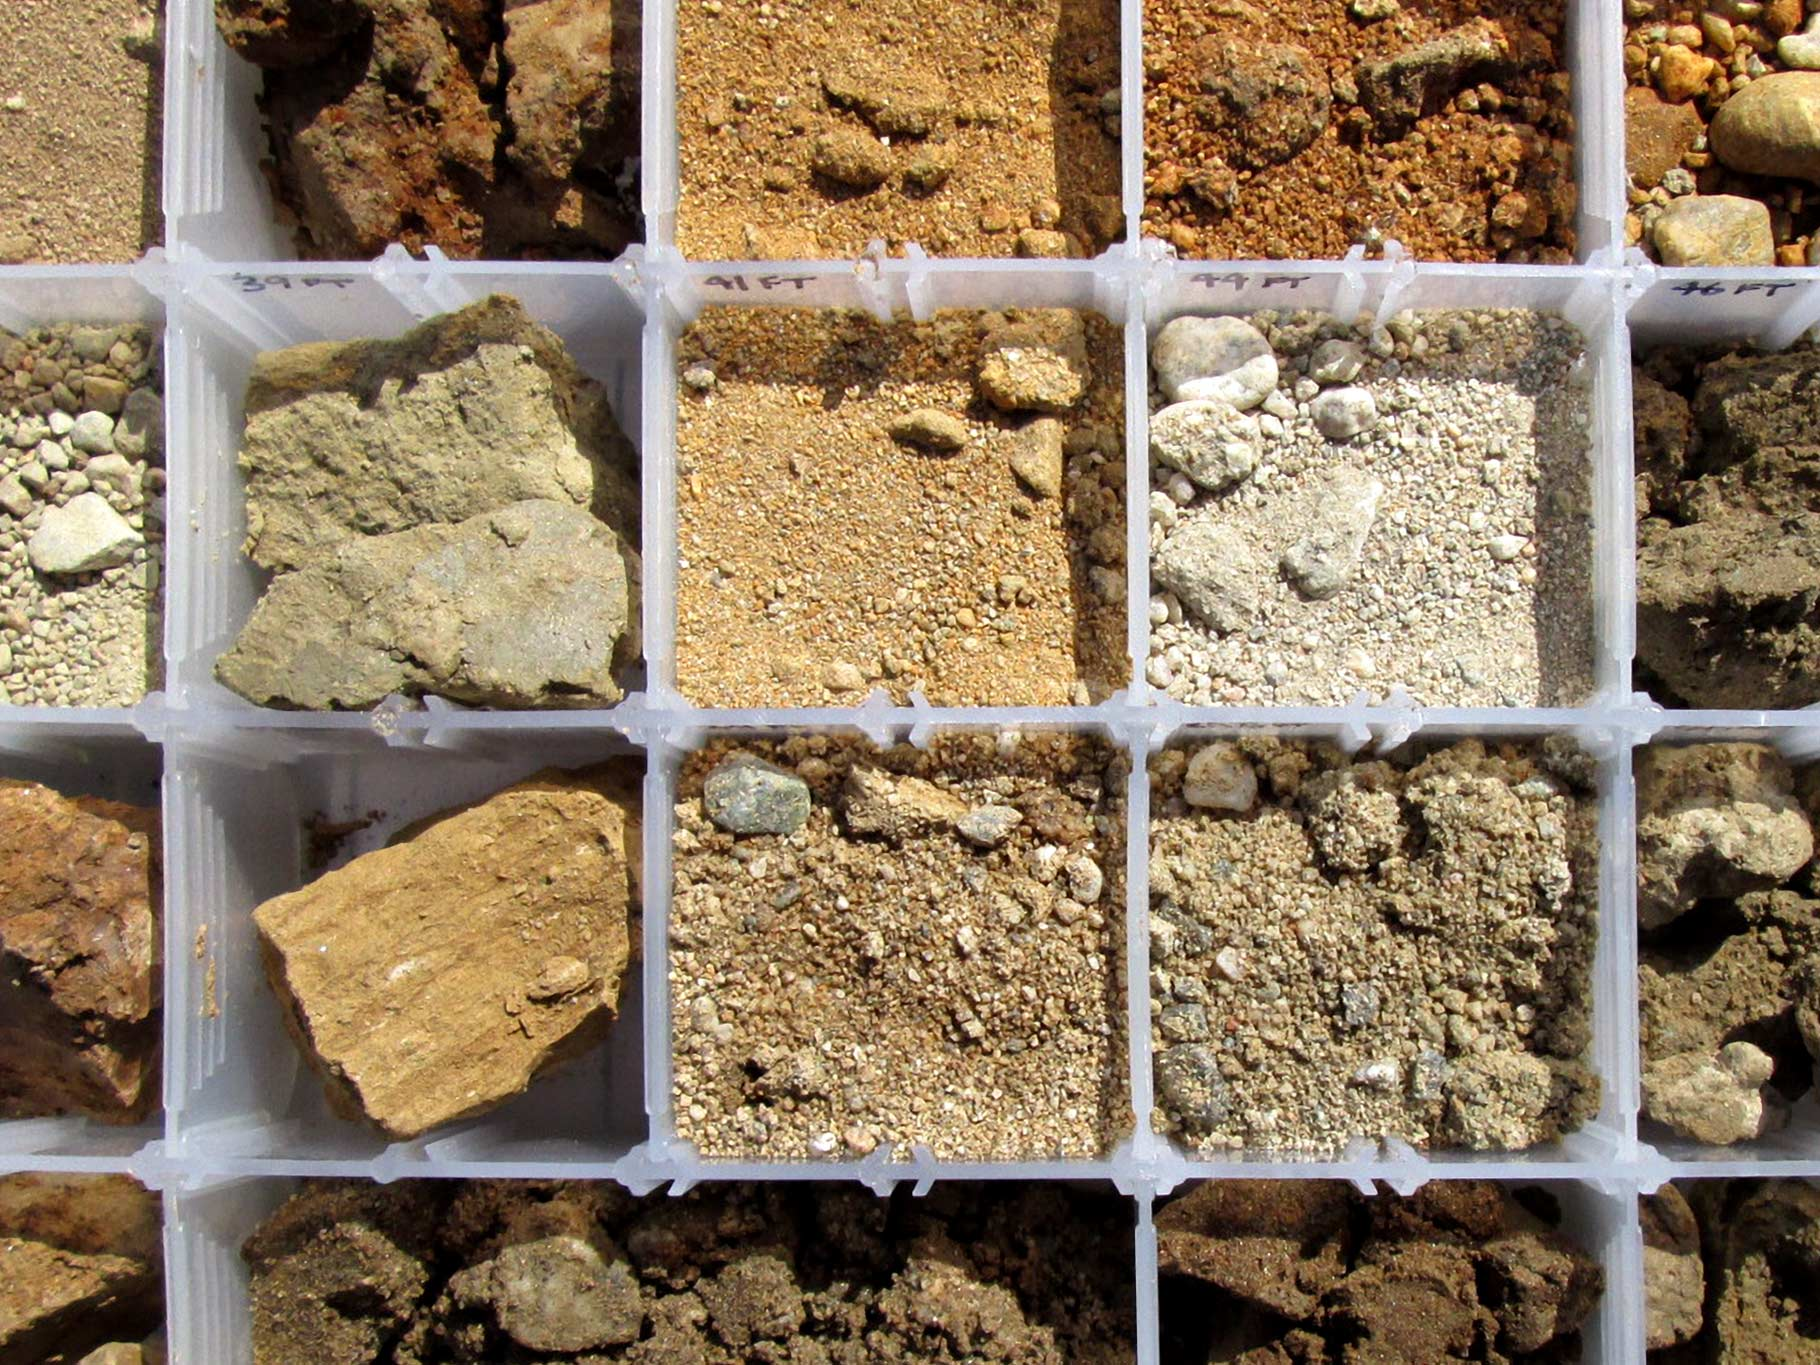 Various Soil Samples